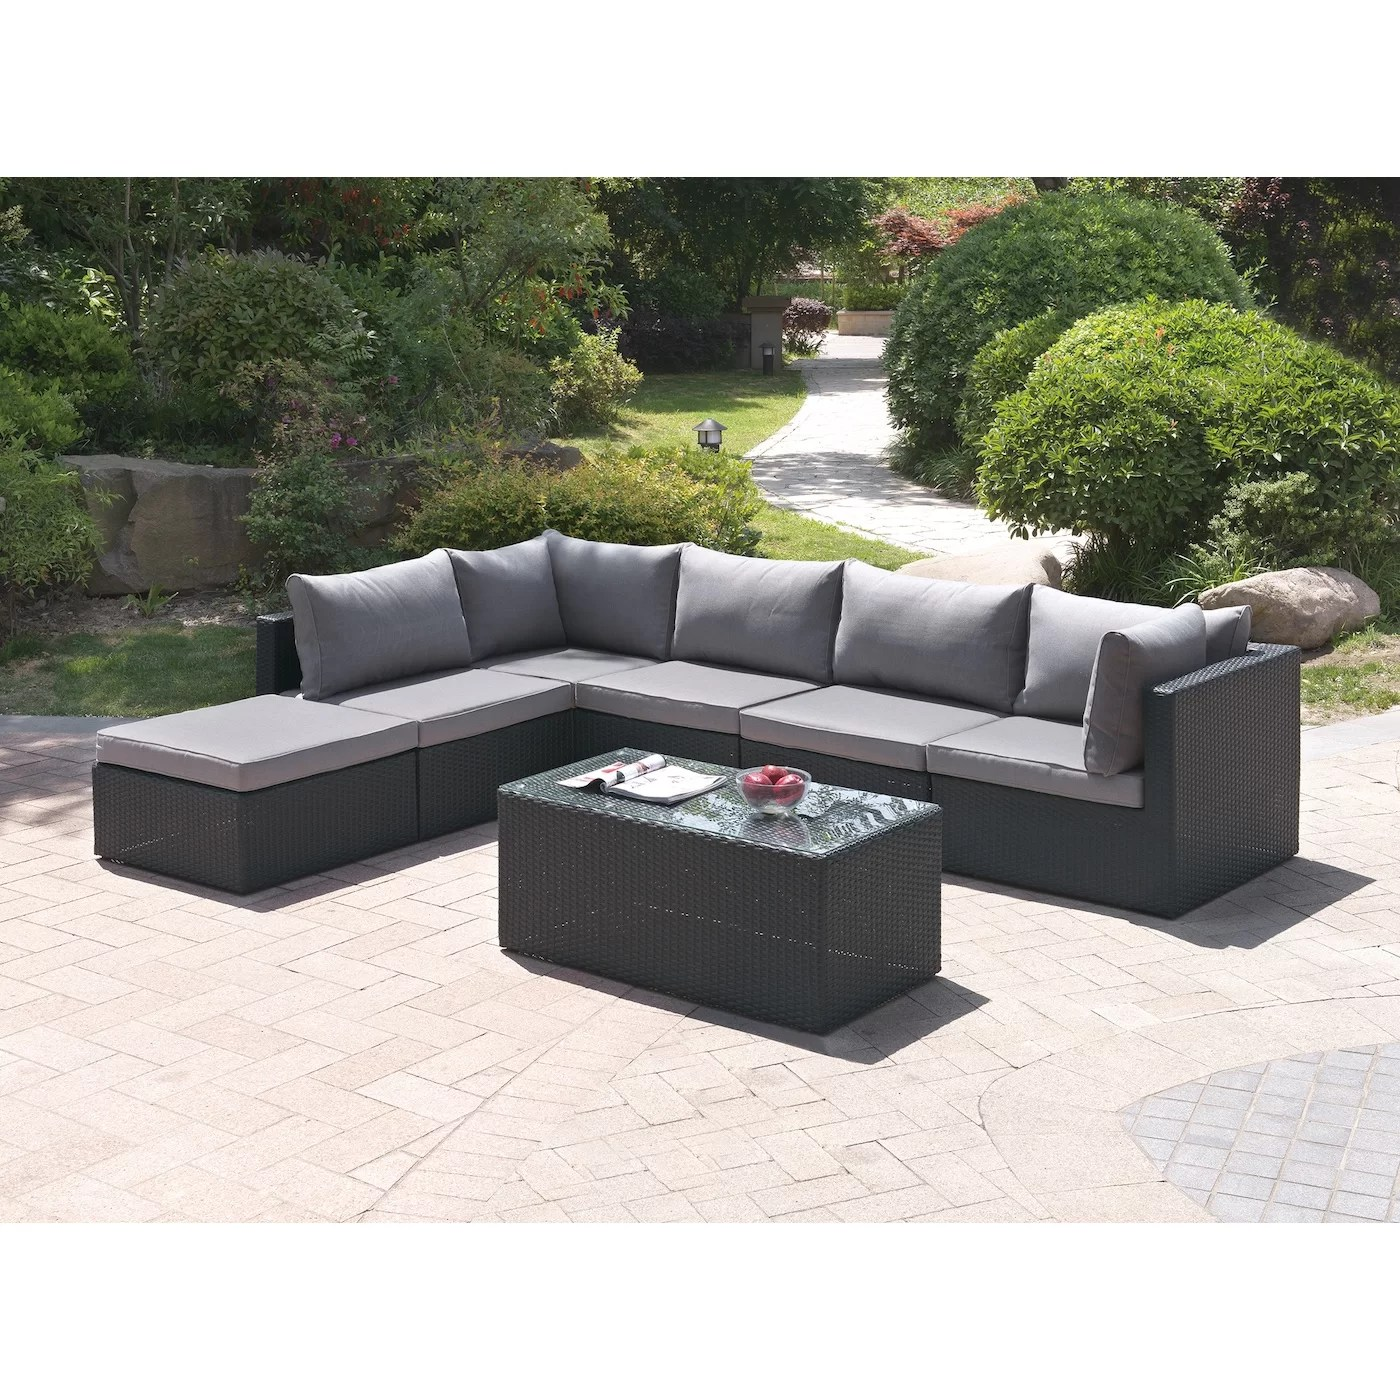 where to buy sofa in jb fortress patio wicker 7 piece deep sectional group set and reviews